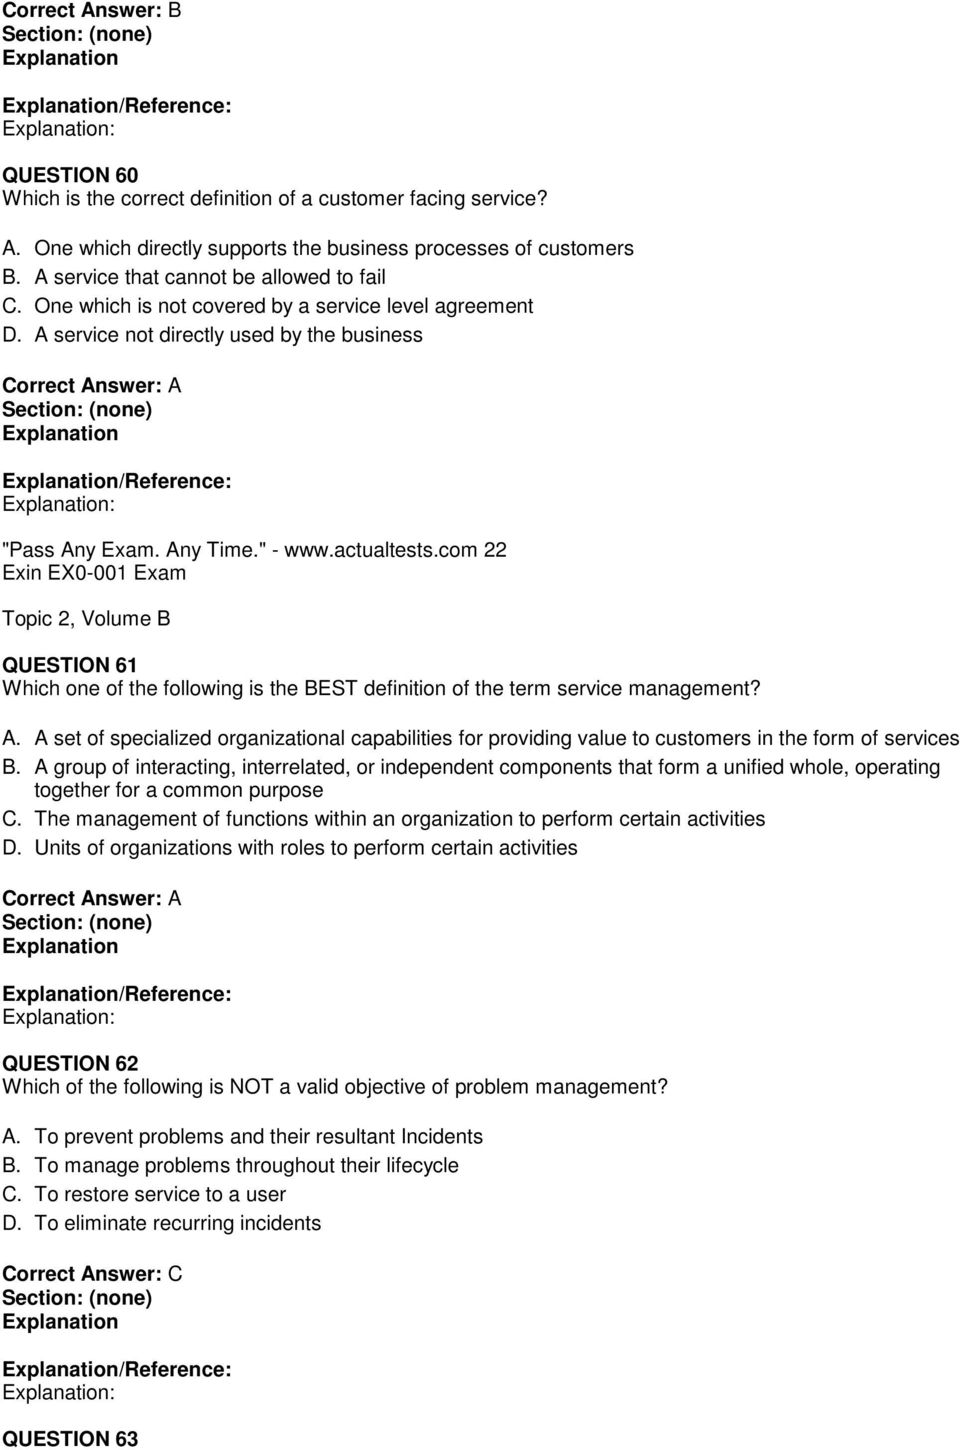 actualtests.com 22 Topic 2, Volume B QUESTION 61 Which one of the following is the BEST definition of the term service management? A.